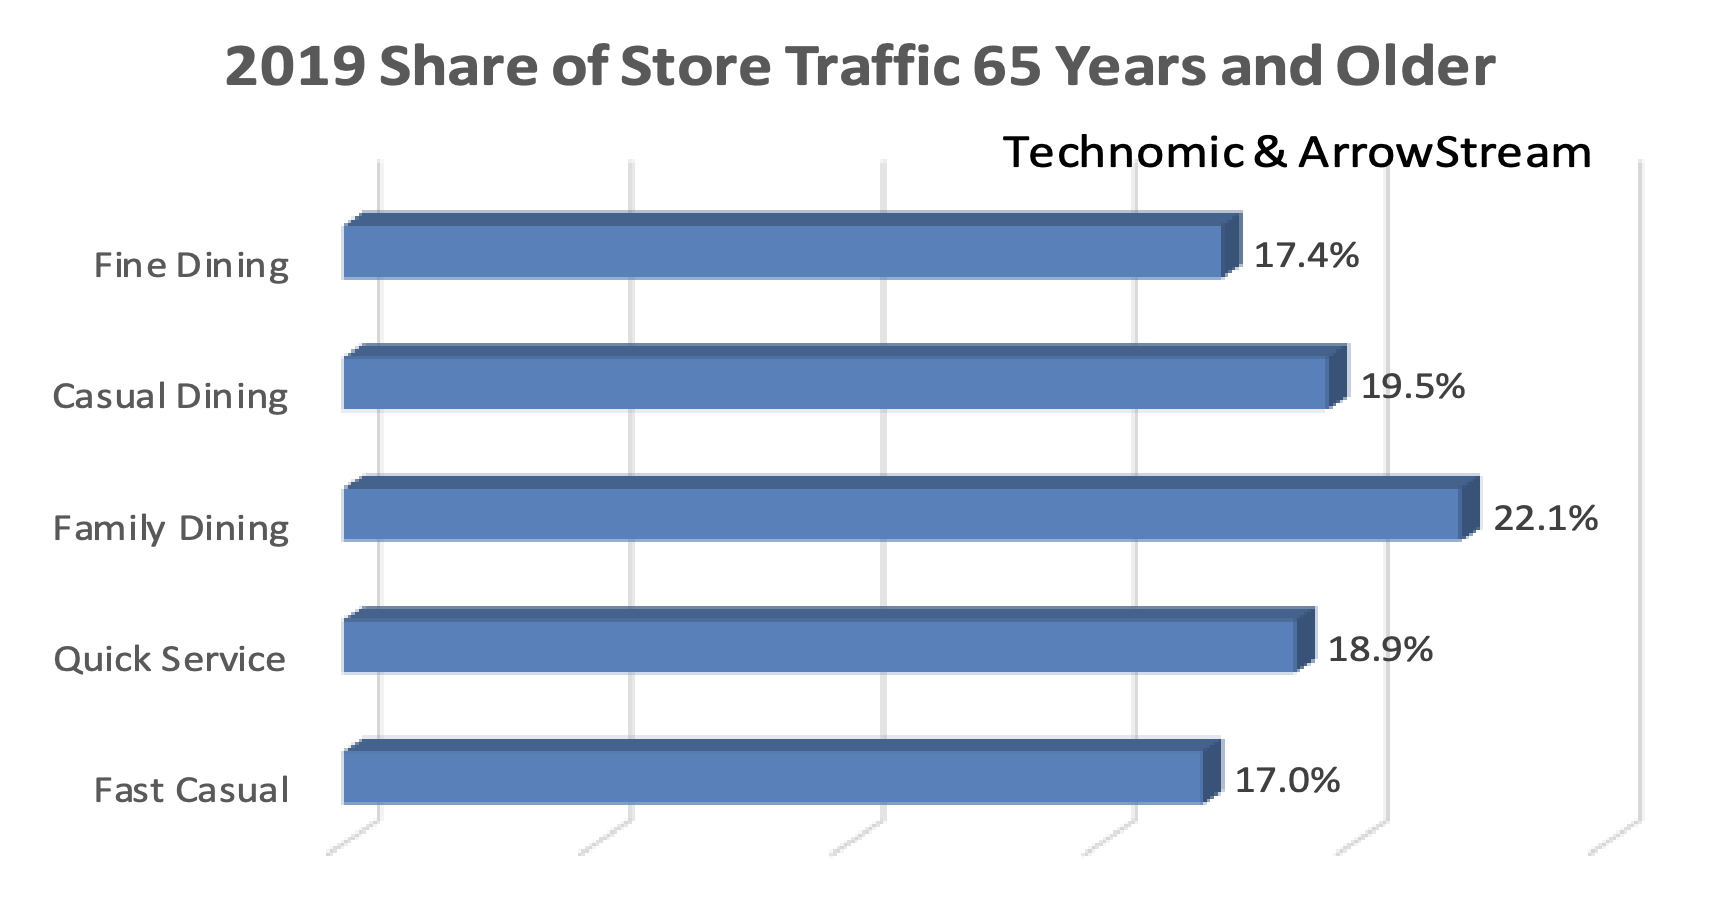 2019 Share of Store Traffic 65 Years and Older